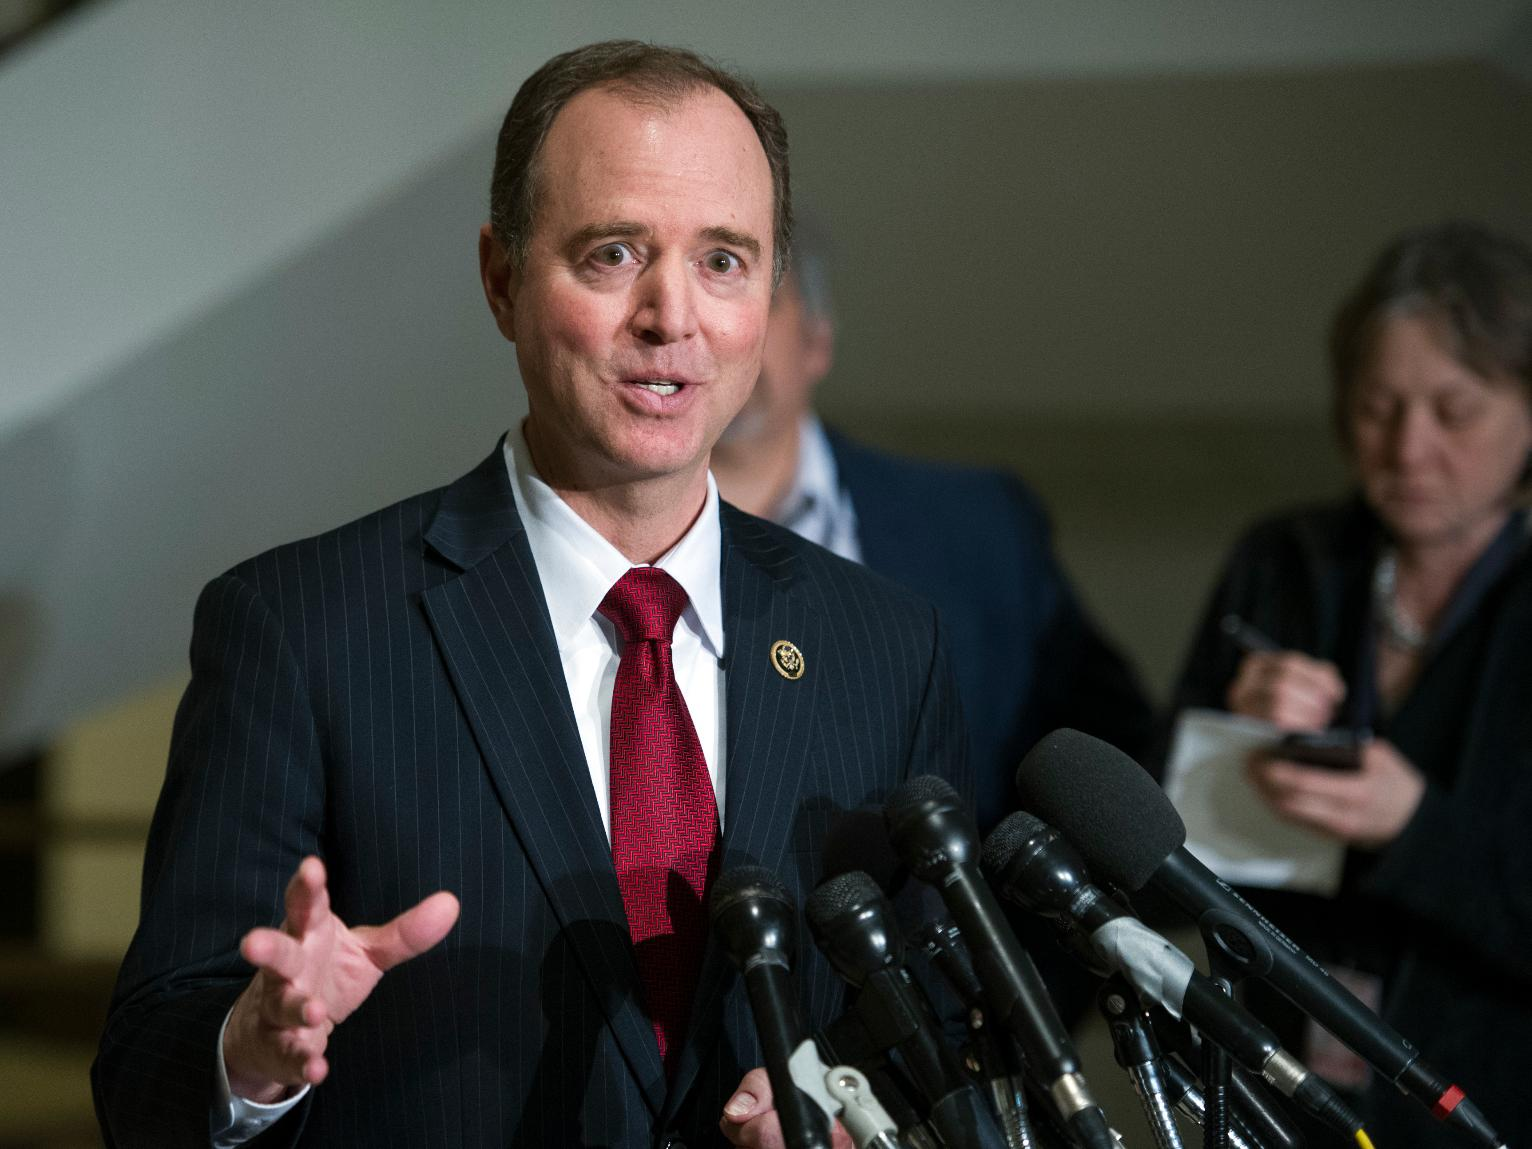 10 Things You Didn't Know About Adam Schiff | National News | US News